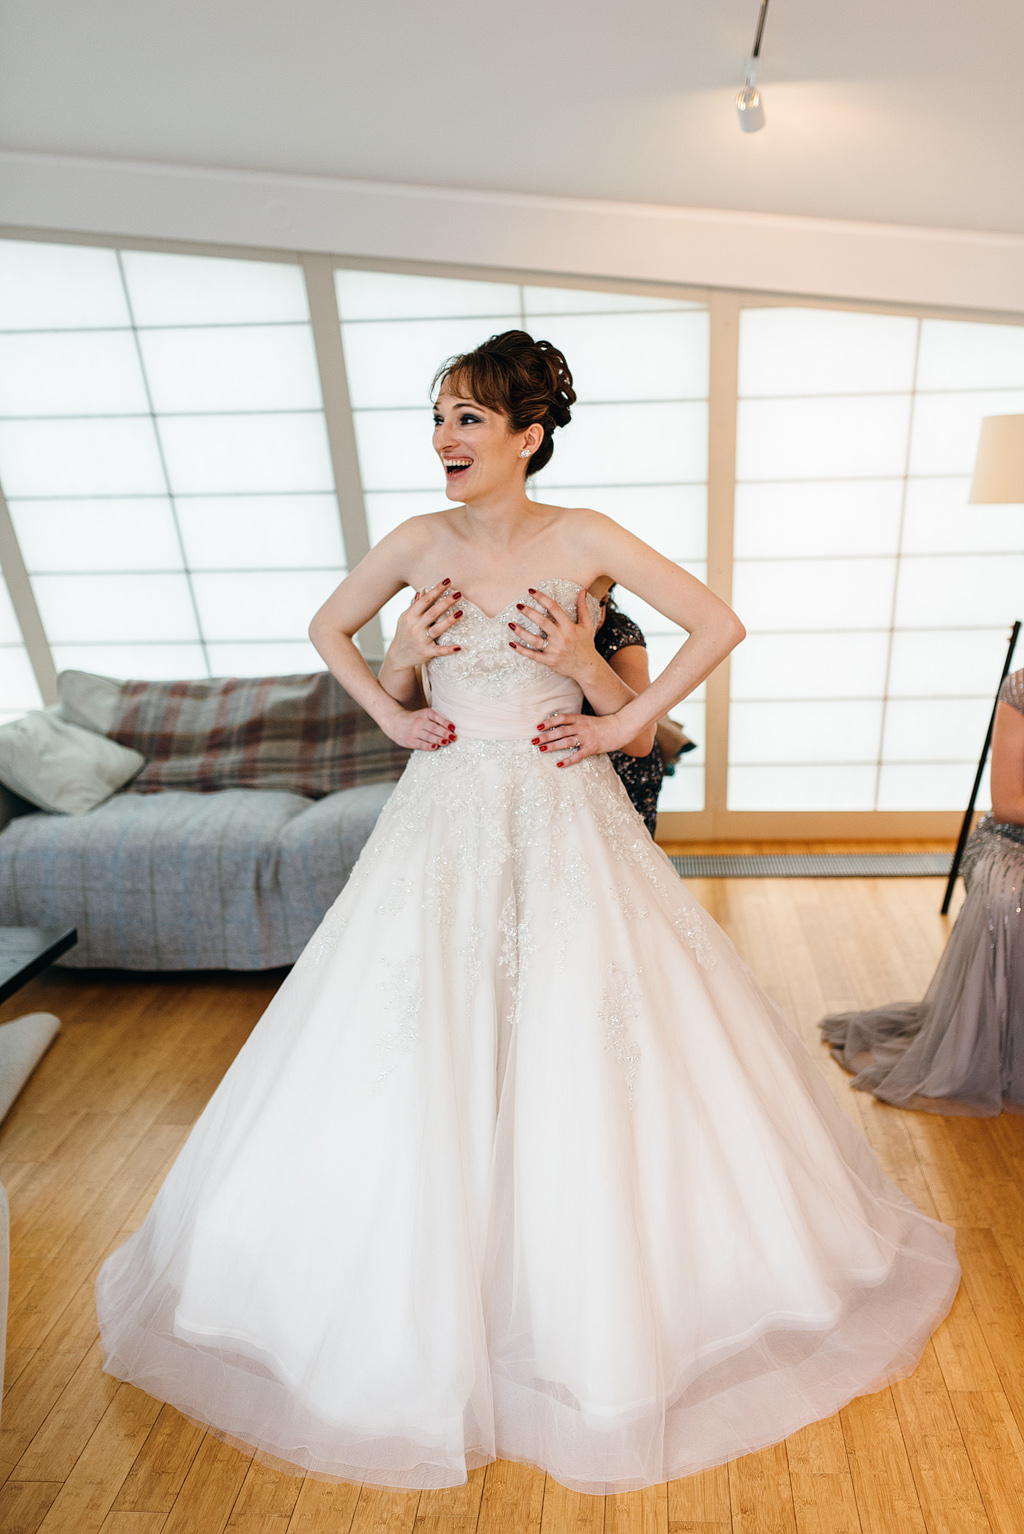 Bride laughing while getting into wedding dress